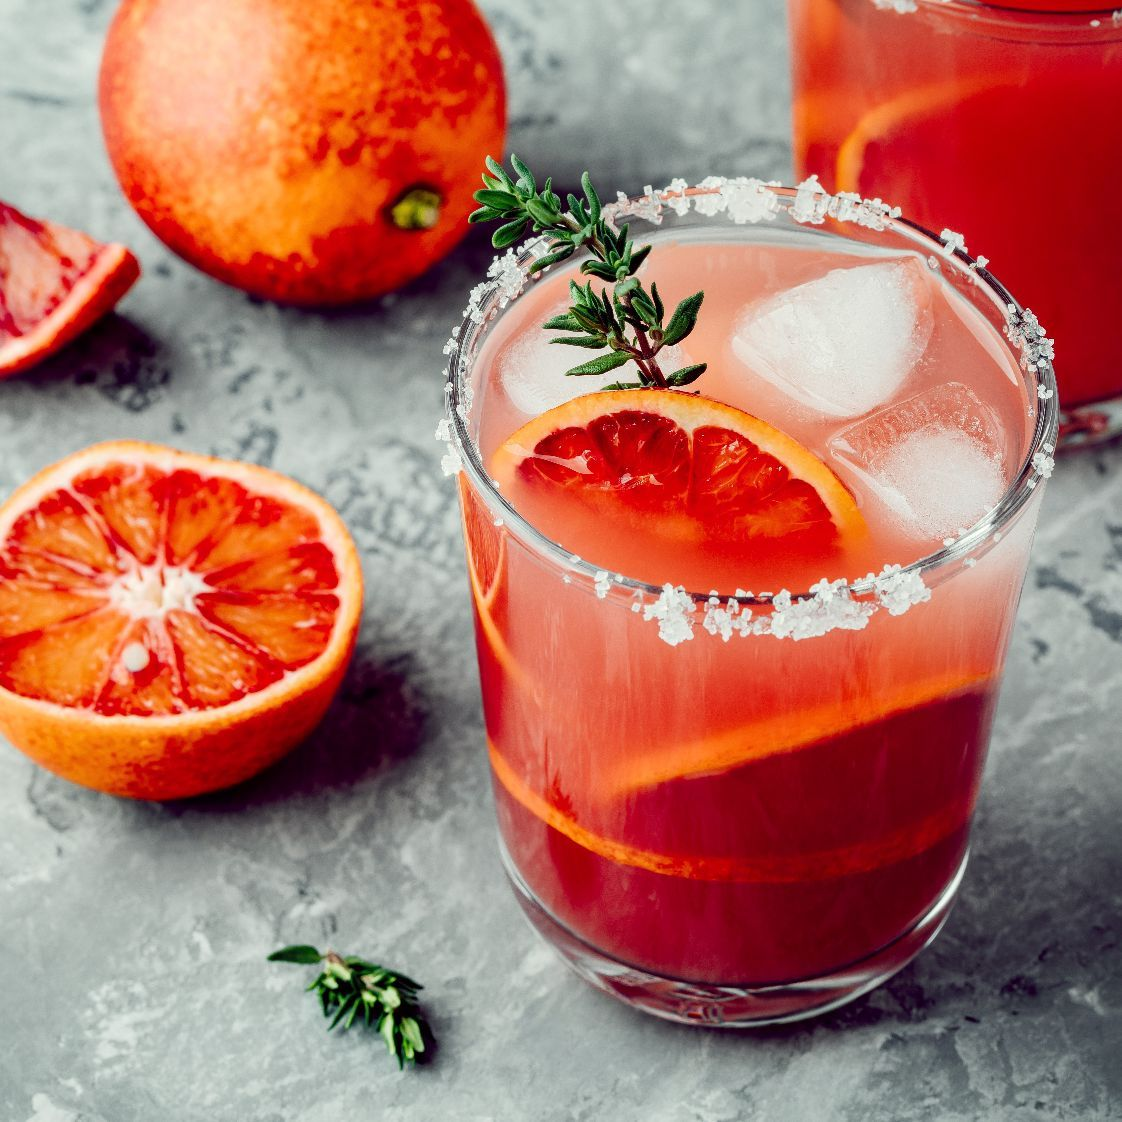 This cocktail features our fresh-squeezed blood orange juice imported from Sicily. Our juice is grown at the base of Mt. Etna, an active volcano. The volcano releases nutrients into the soil which gives our oranges a rich taste and health benefits.